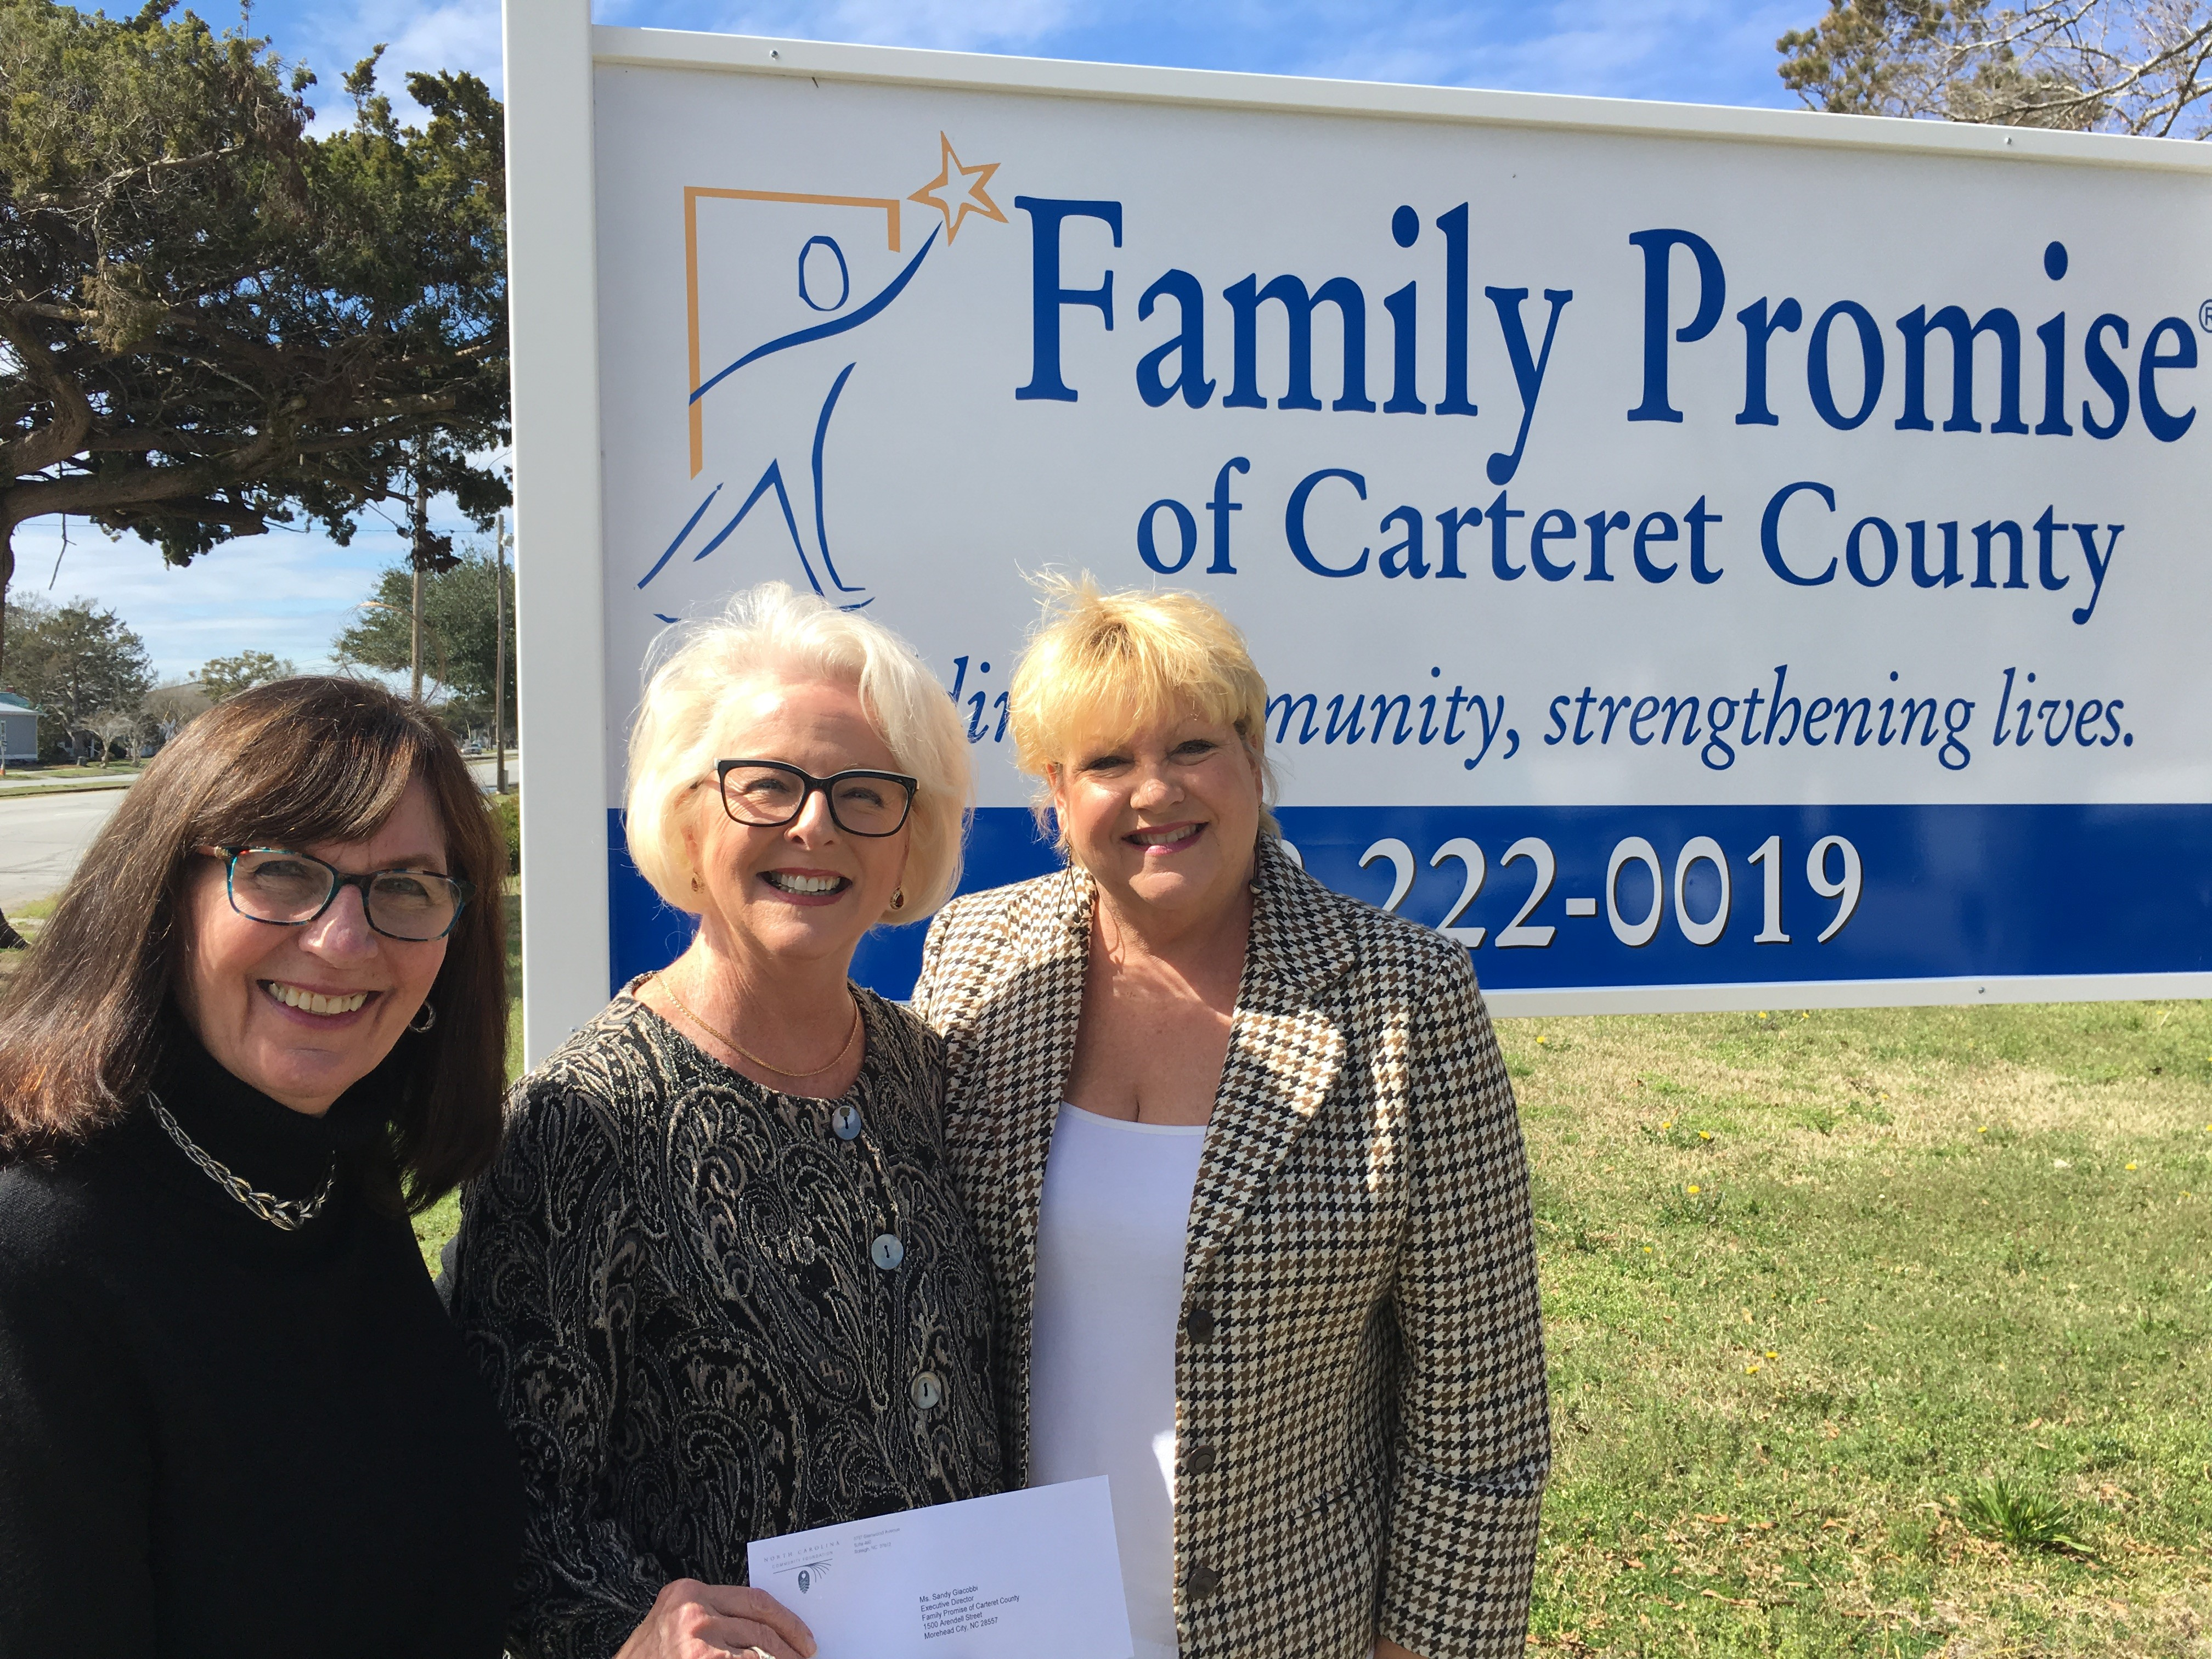 Kniffy Hamilton, CCF board member, and Terry Robertson, CCF board president, present a check to Family Promise of Carteret County to support disaster recovery.